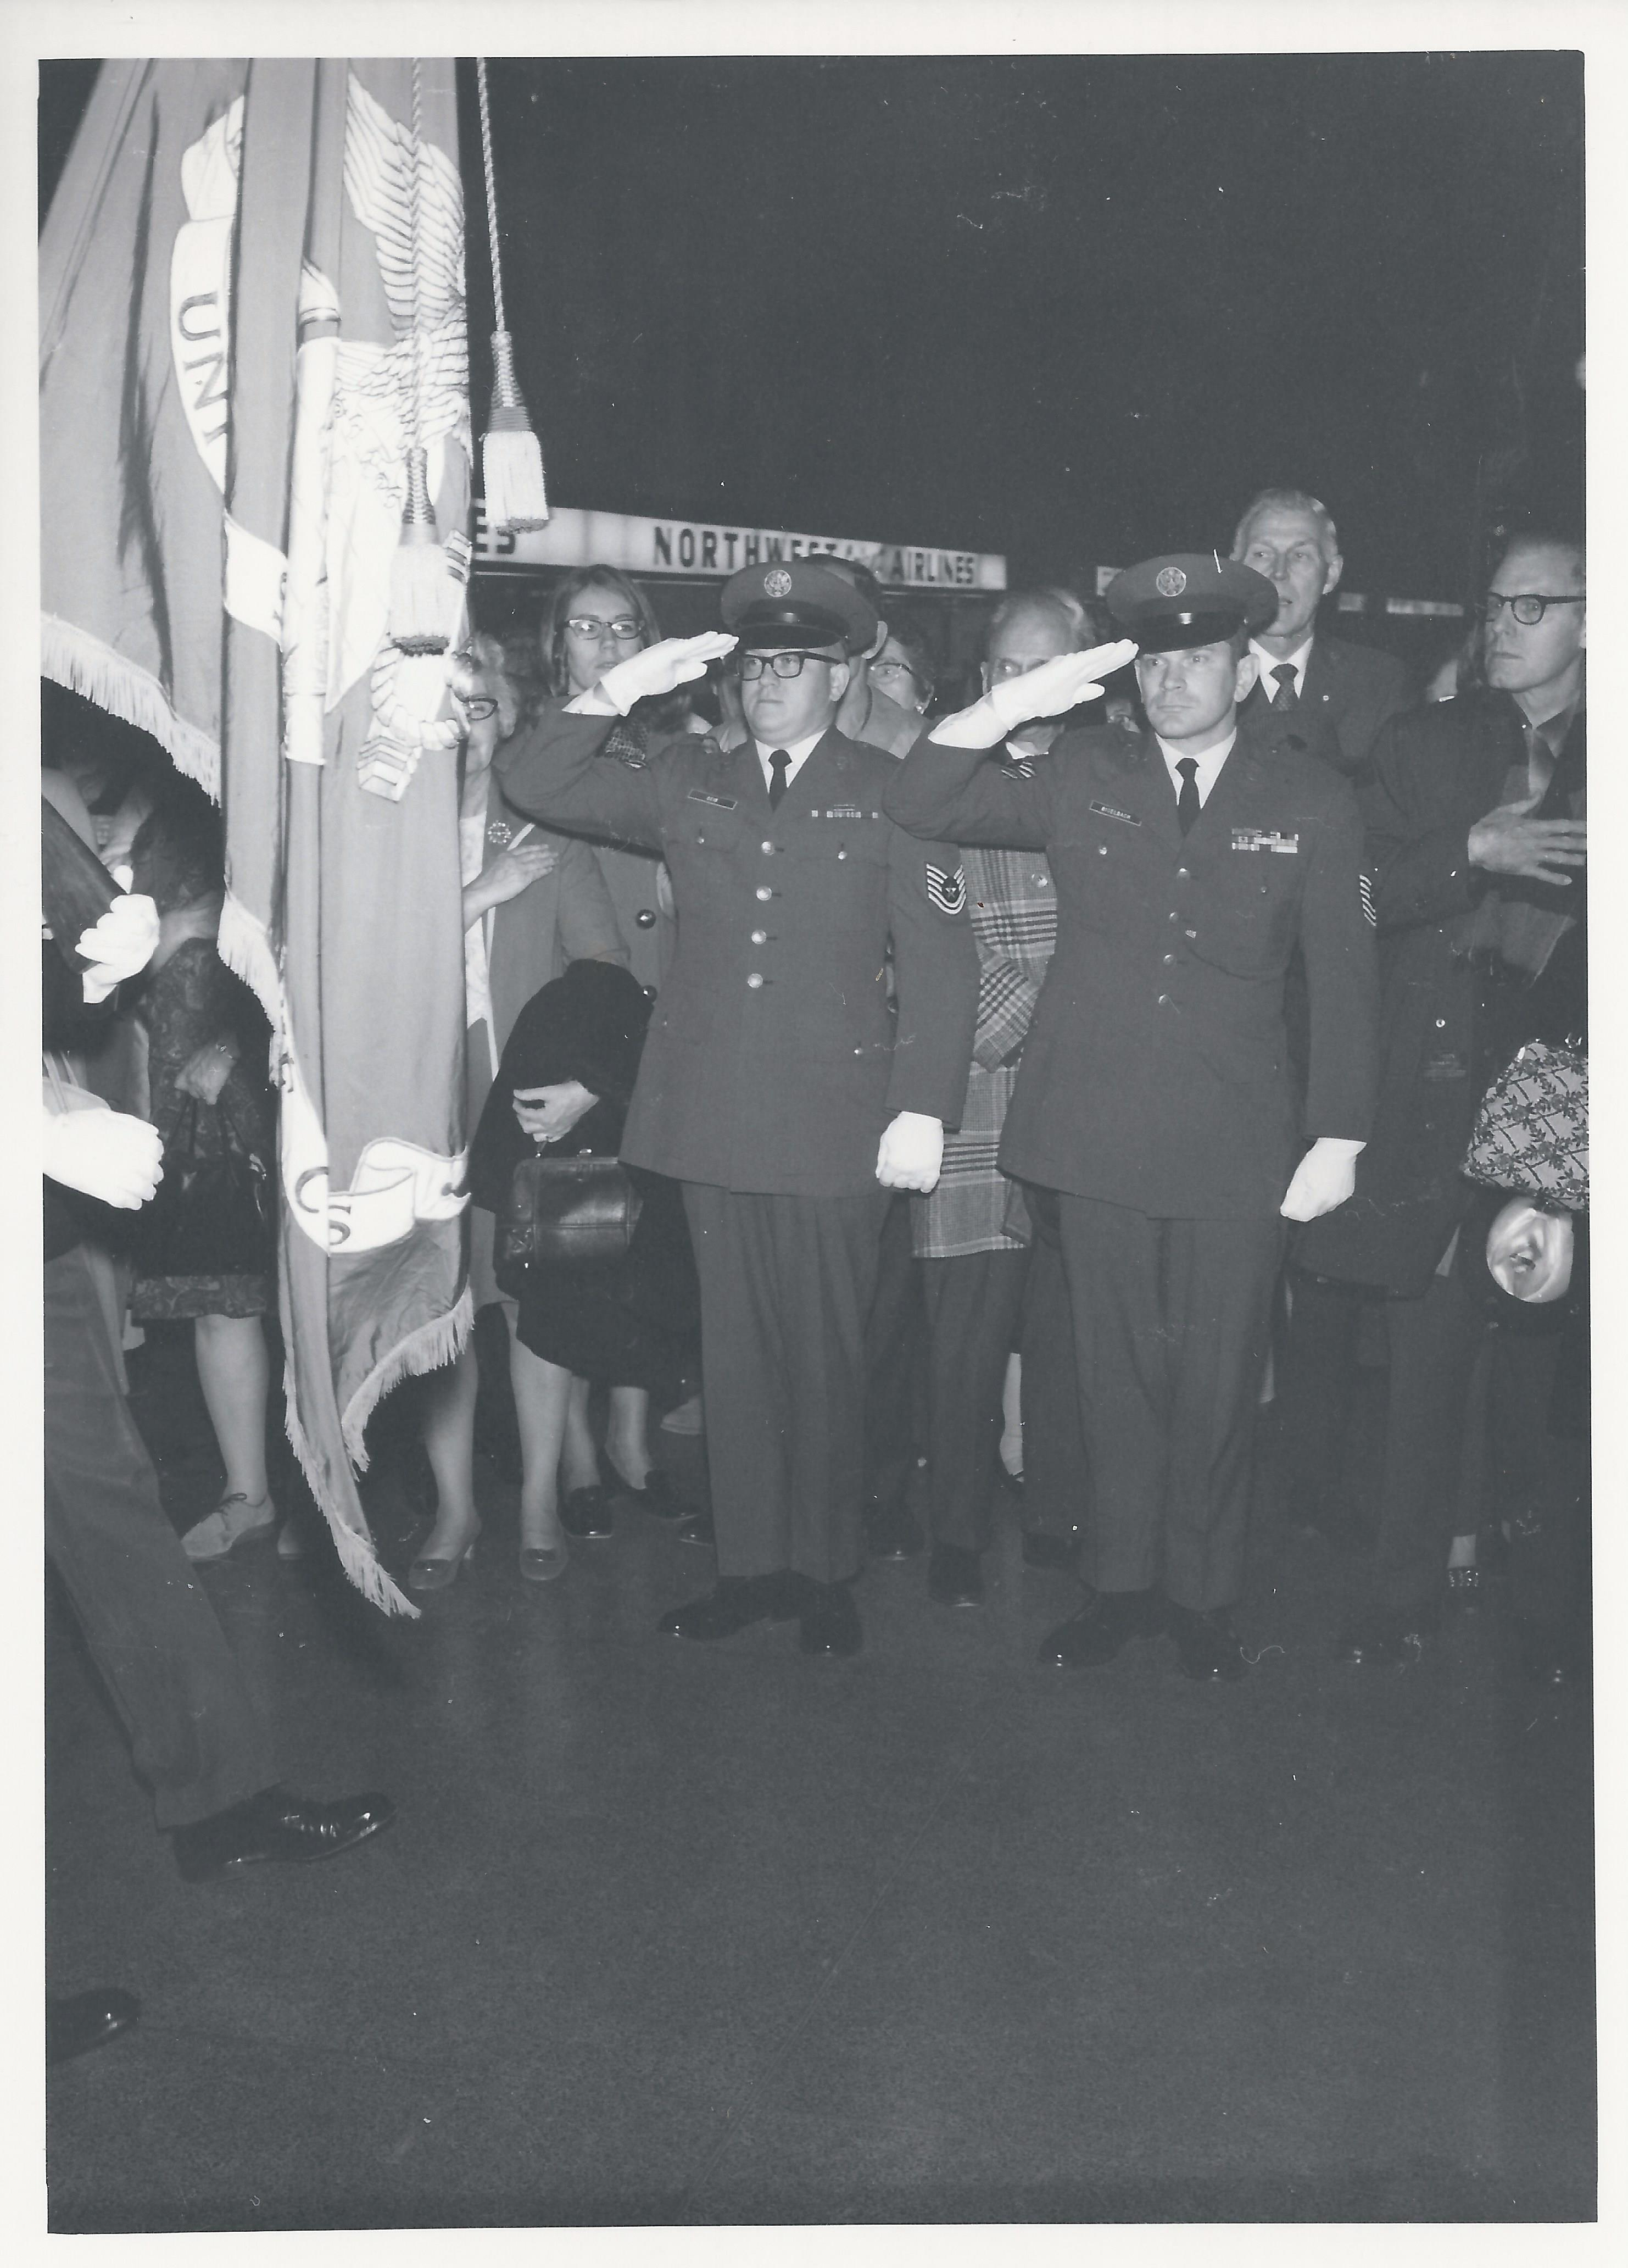 1970 Nov 22 - Troops saluting at opening day event